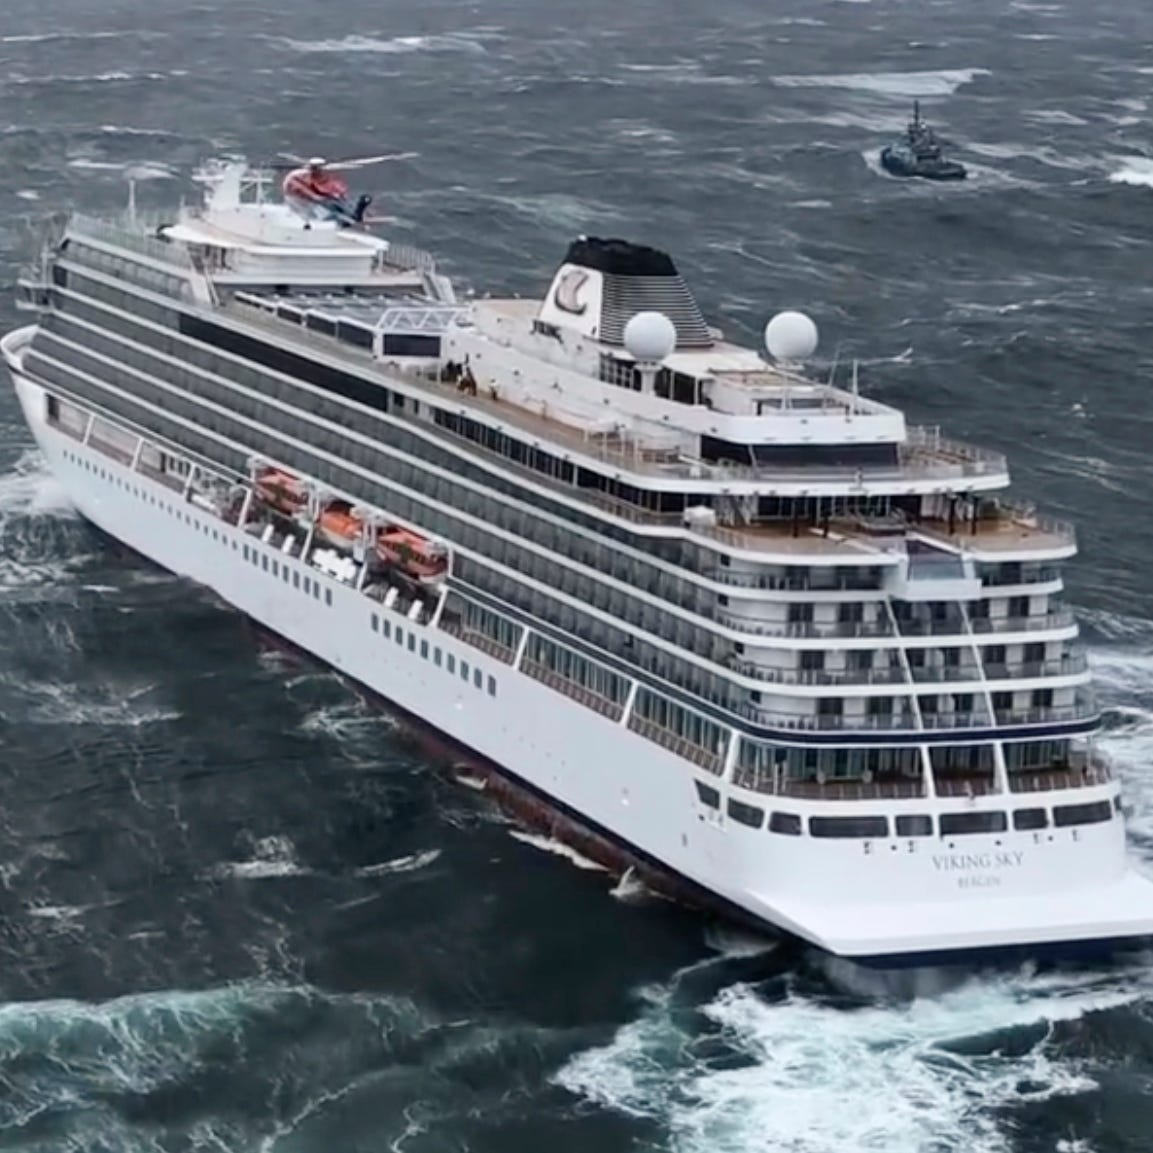 Passengers faced mortality as 26-foot waves crashed into cruise ship